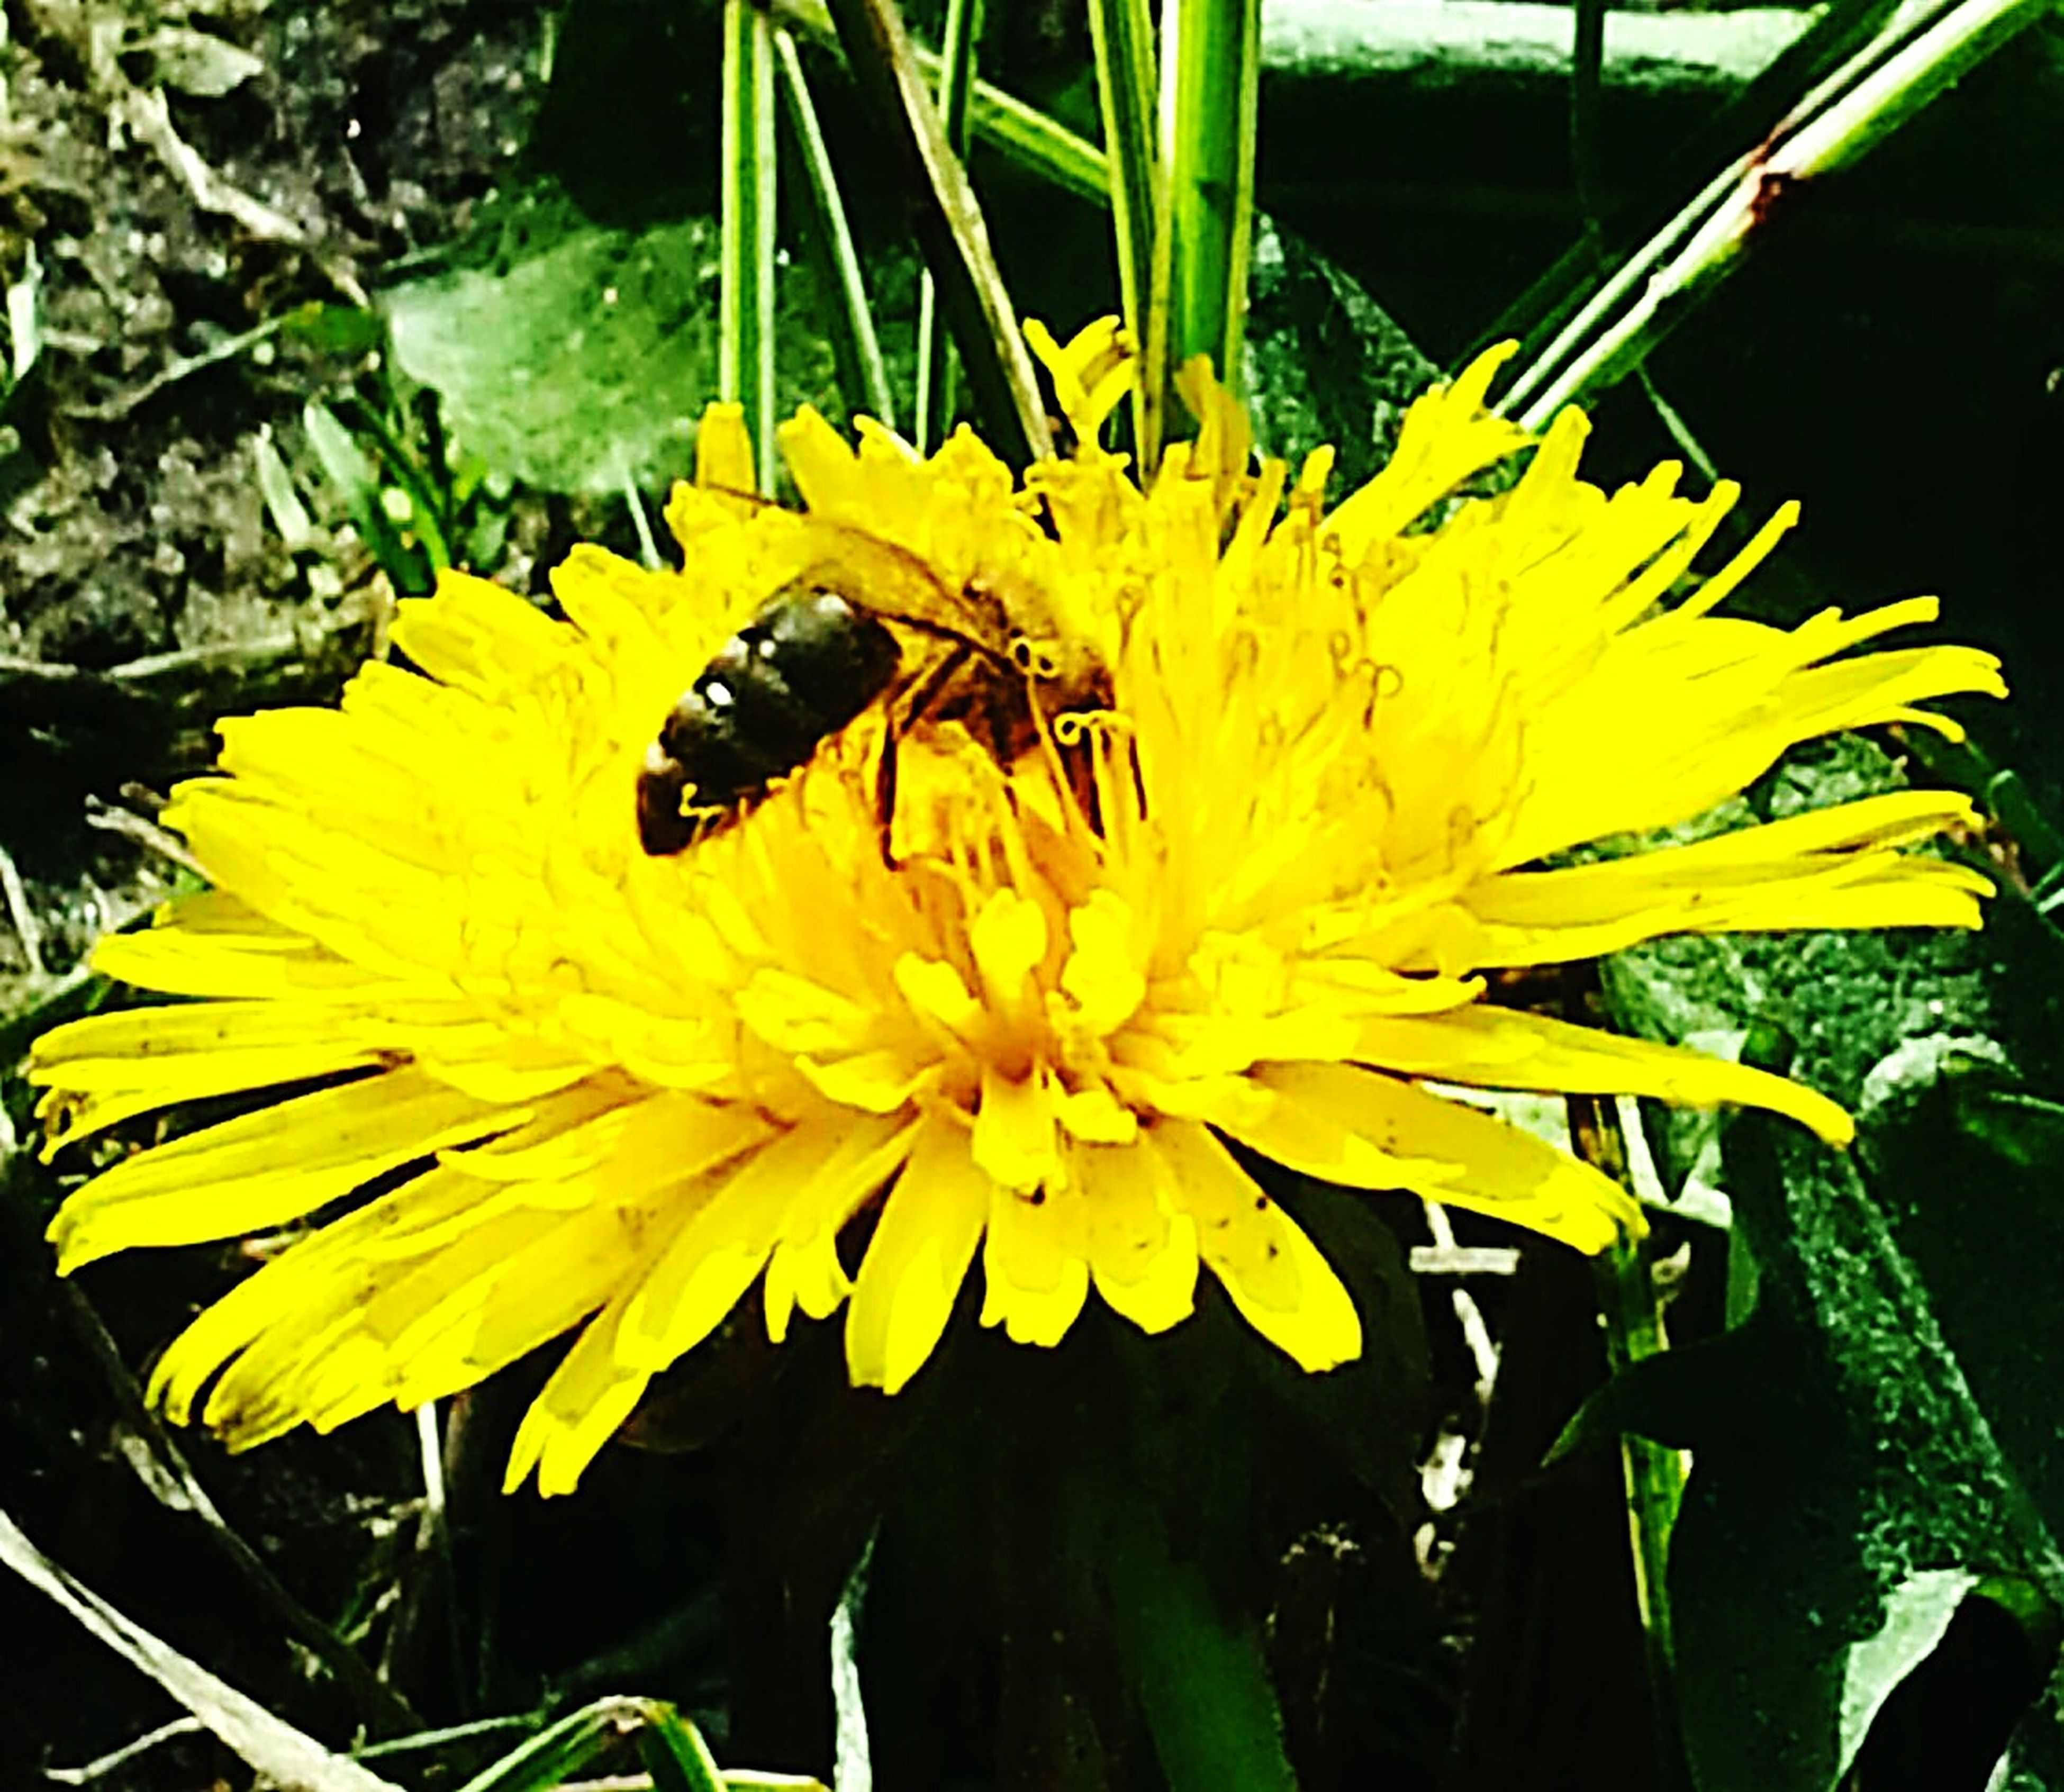 flower, insect, one animal, yellow, petal, animal themes, animals in the wild, wildlife, freshness, flower head, fragility, pollination, bee, beauty in nature, close-up, growth, nature, plant, pollen, high angle view